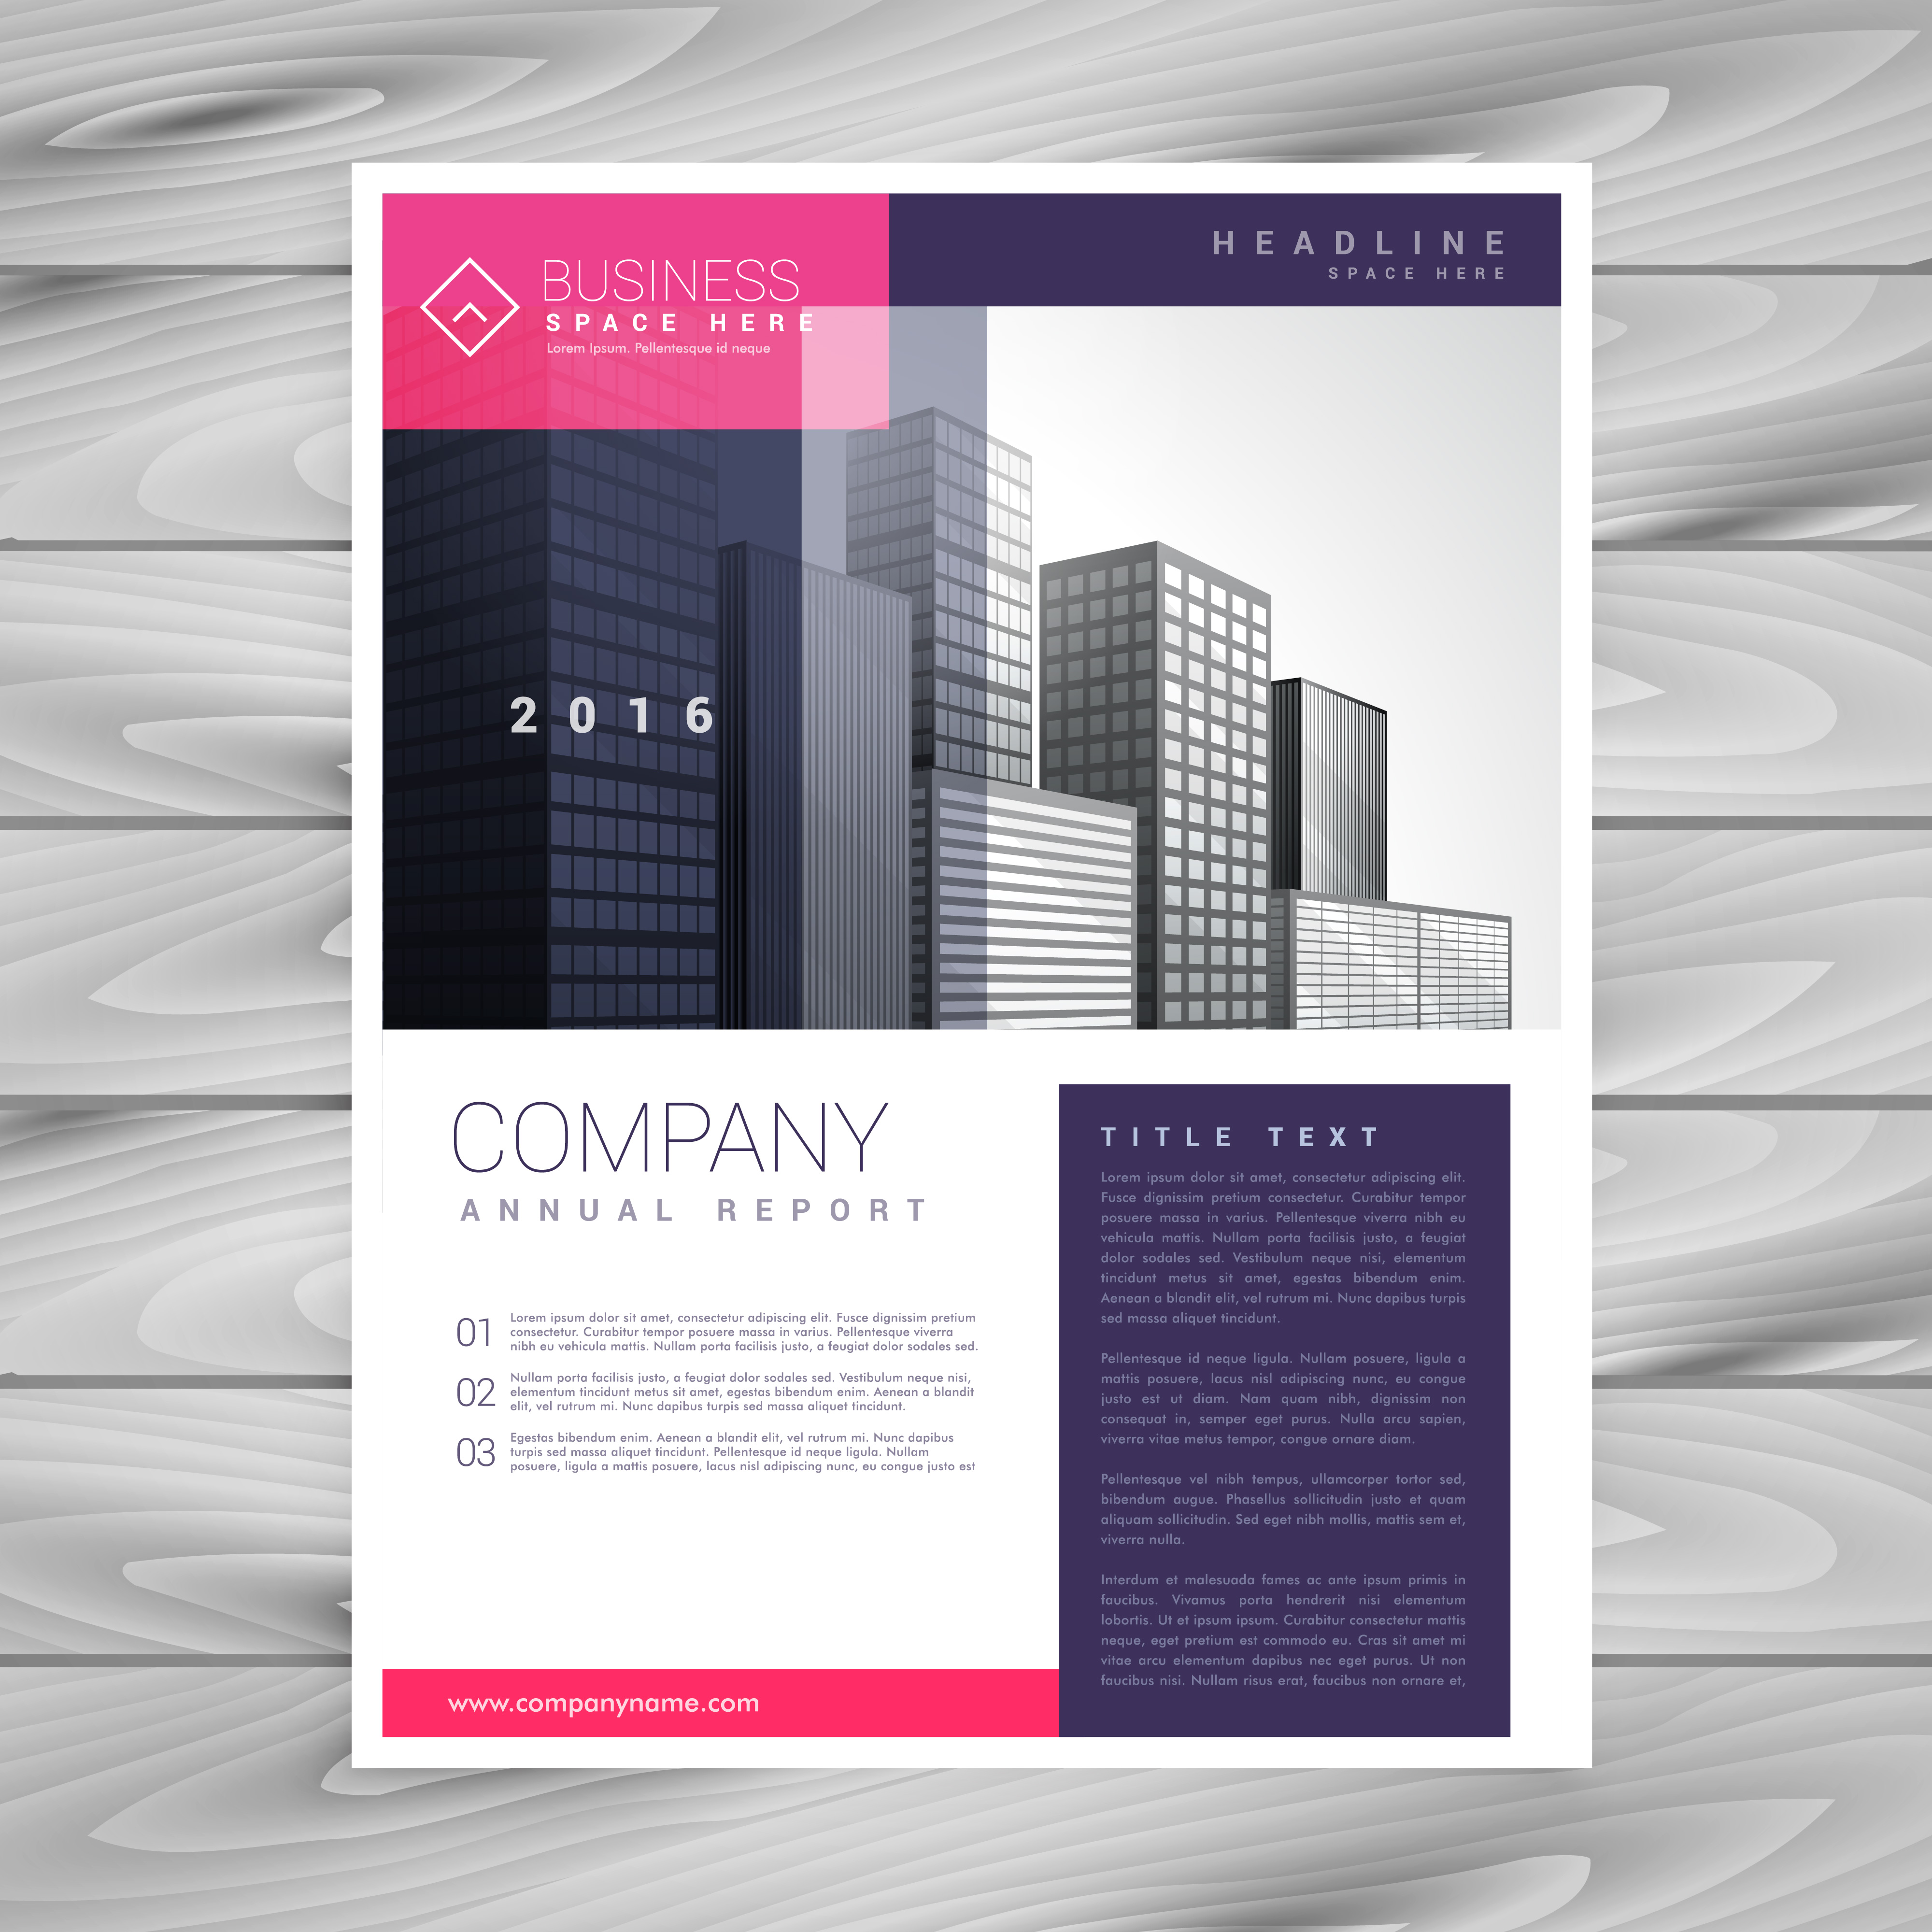 Trendy magazine layout brochure flyer design a4 template for Design brochure template